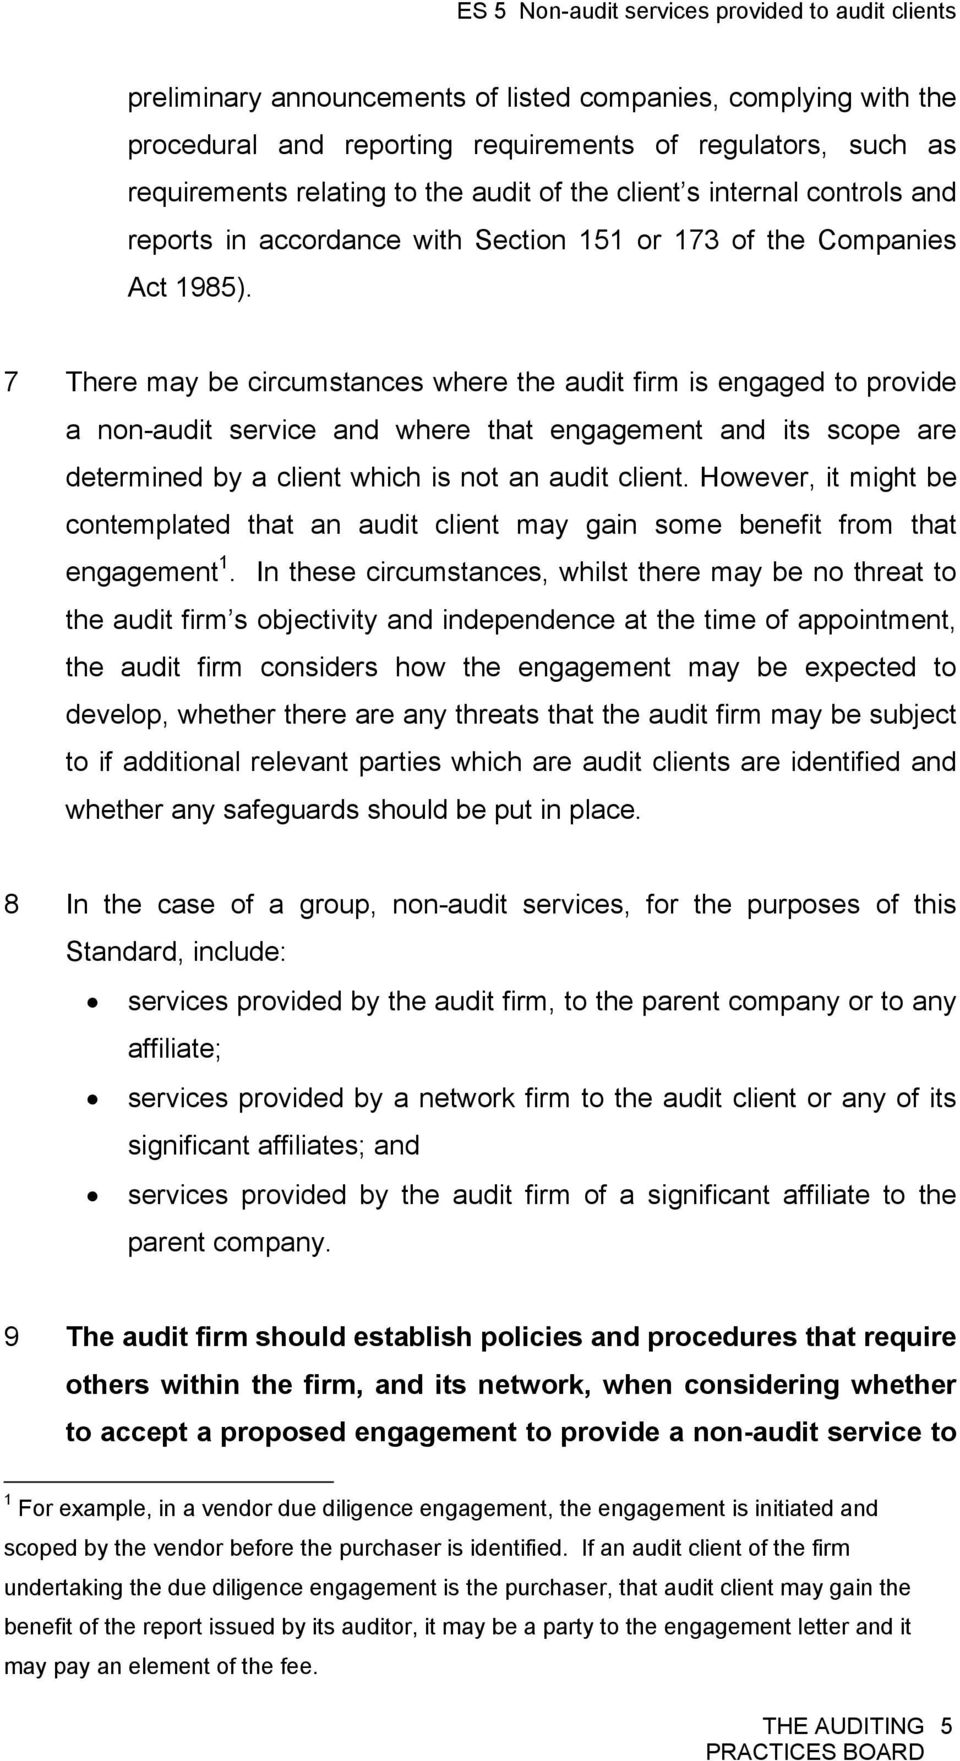 7 There may be circumstances where the audit firm is engaged to provide a non-audit service and where that engagement and its scope are determined by a client which is not an audit client.